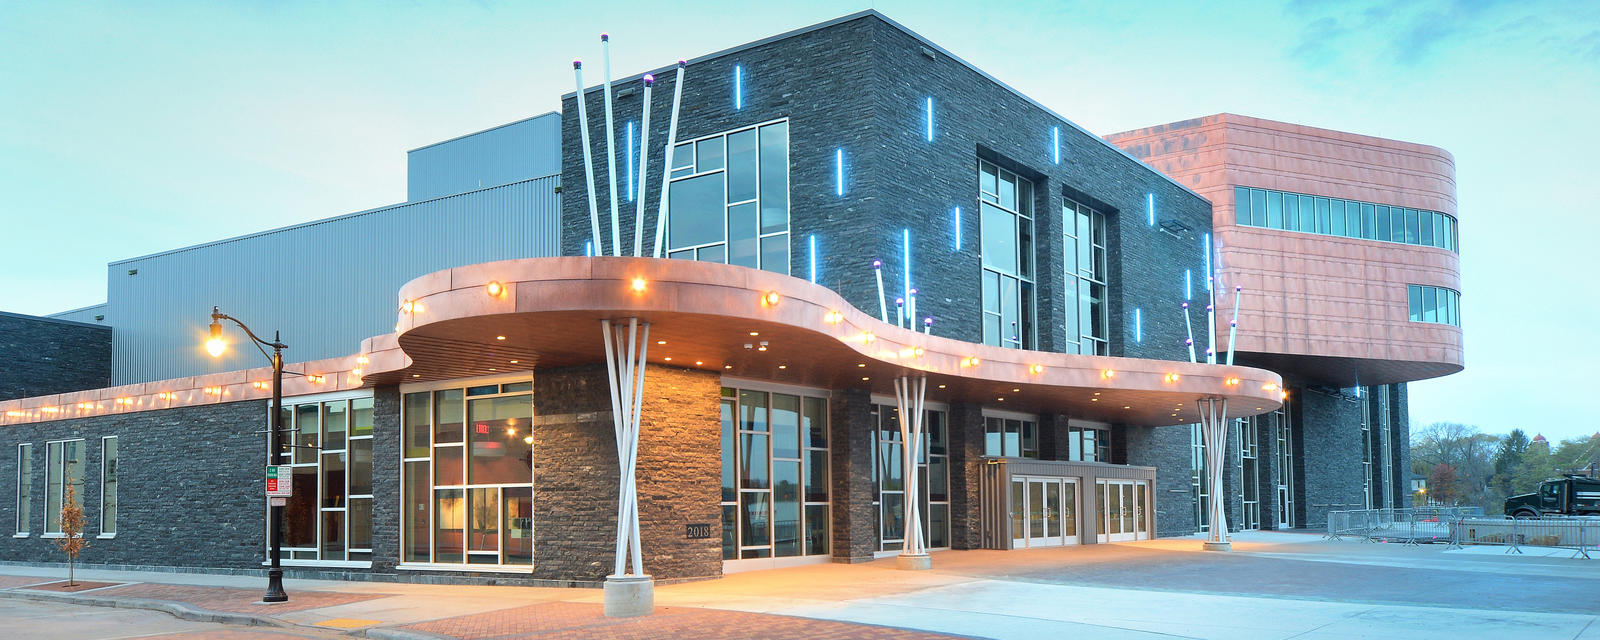 The Pablo Center at the Confluence, Eau Claire, Wisc.